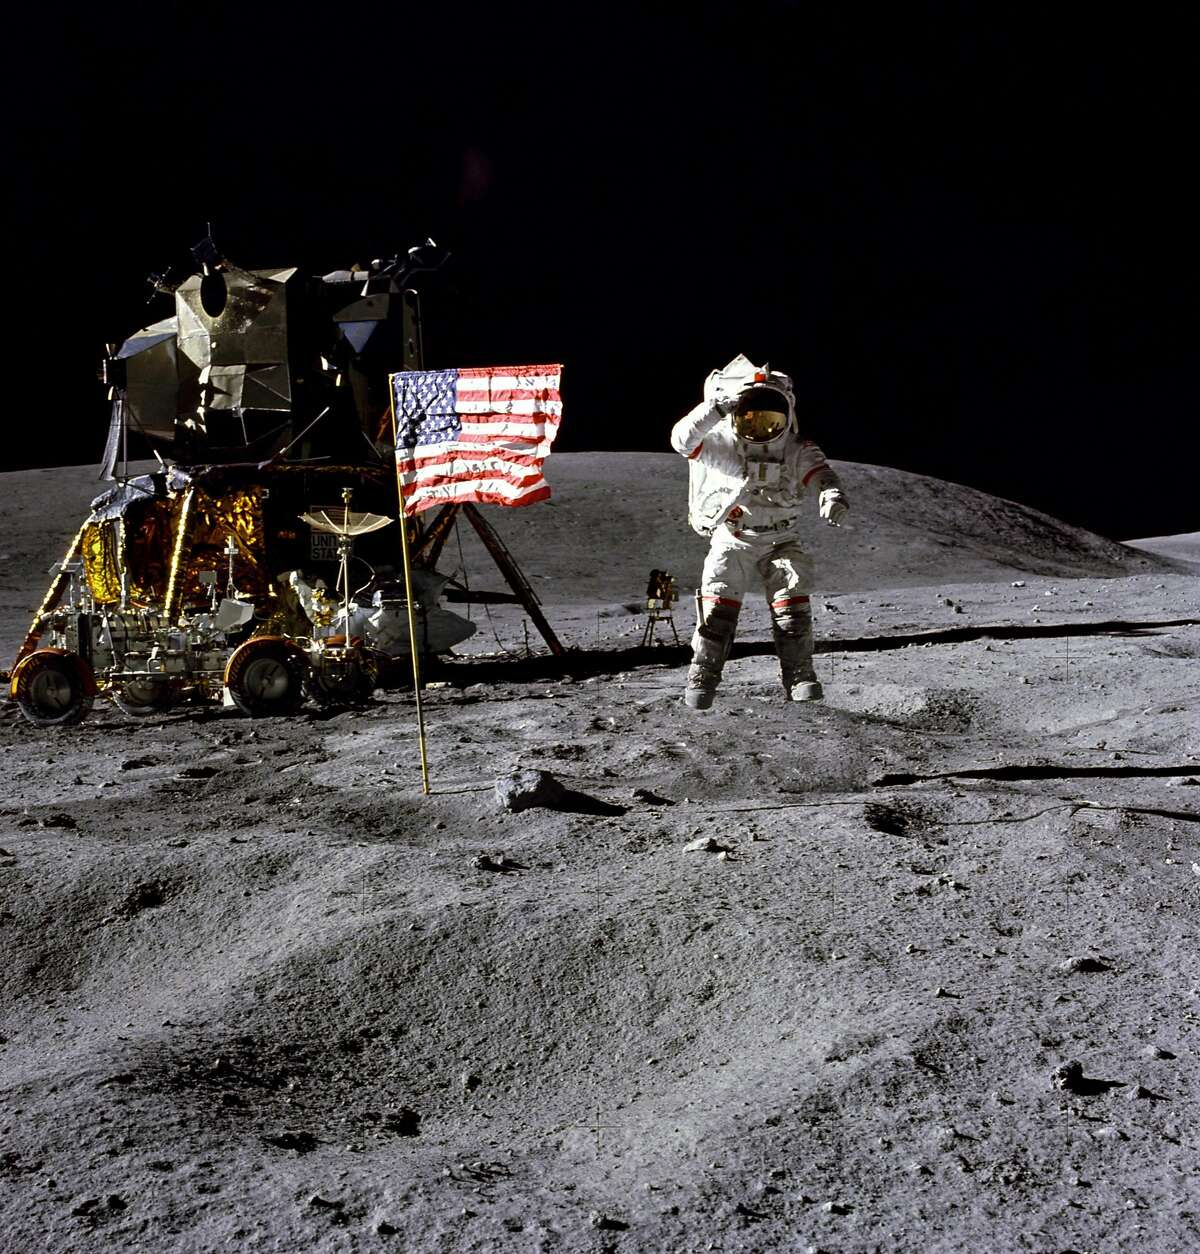 FILE- In this April 1972 photo made available by NASA, John Young salutes the U.S. flag at the Descartes landing site on the moon during the first Apollo 16 extravehicular activity. America's next moon landing will be made by private companies, not NASA. NASA Administrator Jim Bridenstine announced Thursday, Nov. 29, 2018, that nine U.S. companies will compete in delivering experiments to the lunar surface.